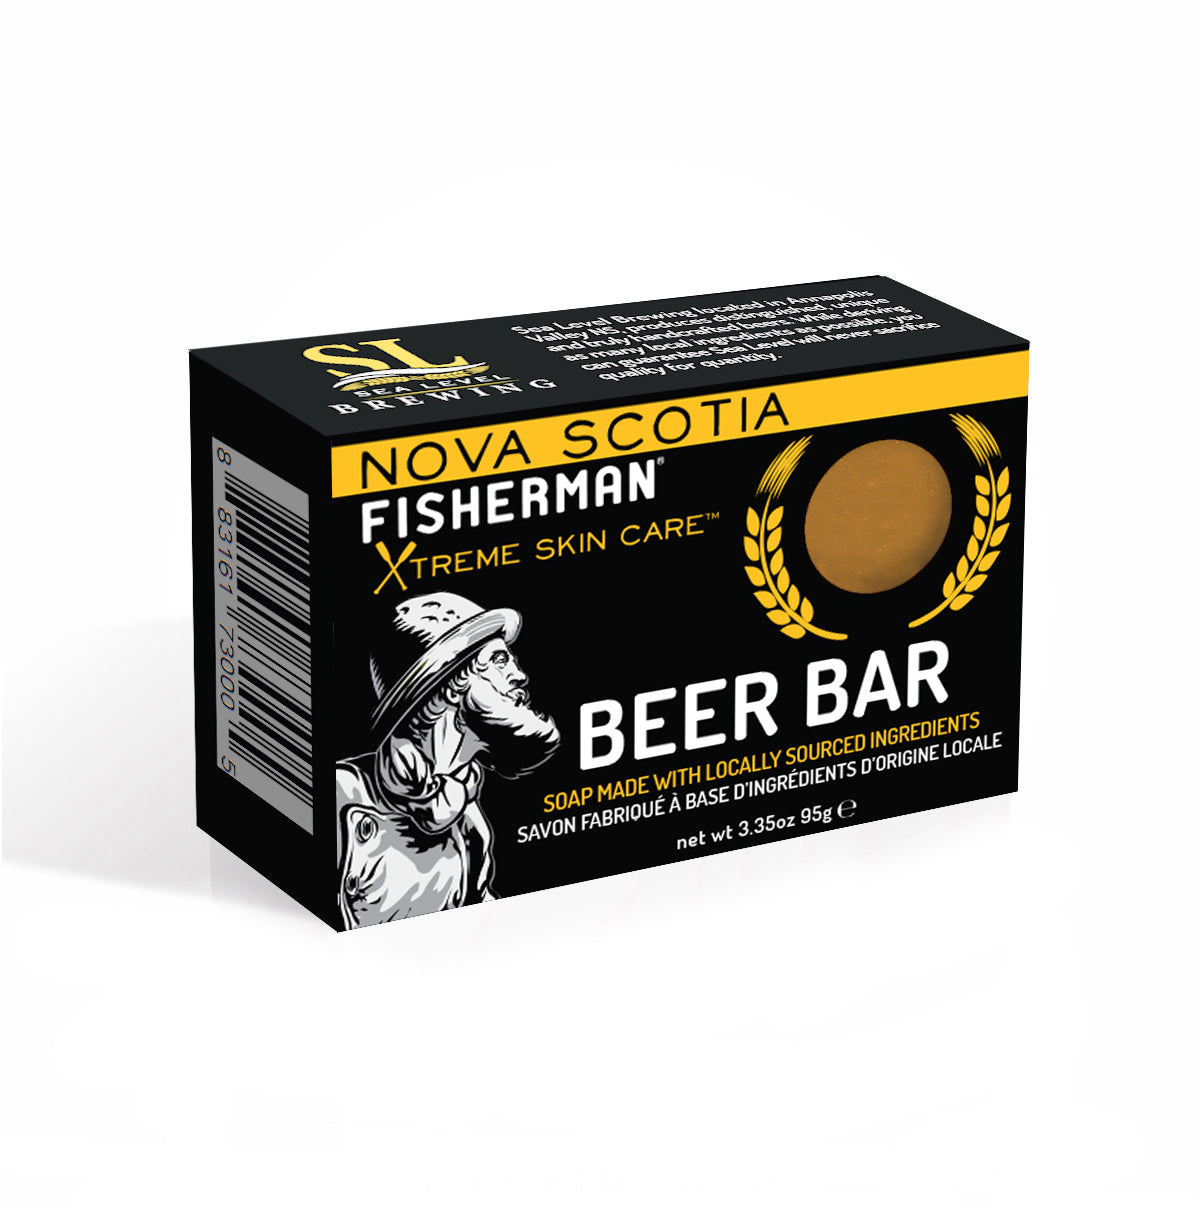 Natural Bar Soap - Beer Bar - Nova Scotia Fisherman Sea Kelp Skincare